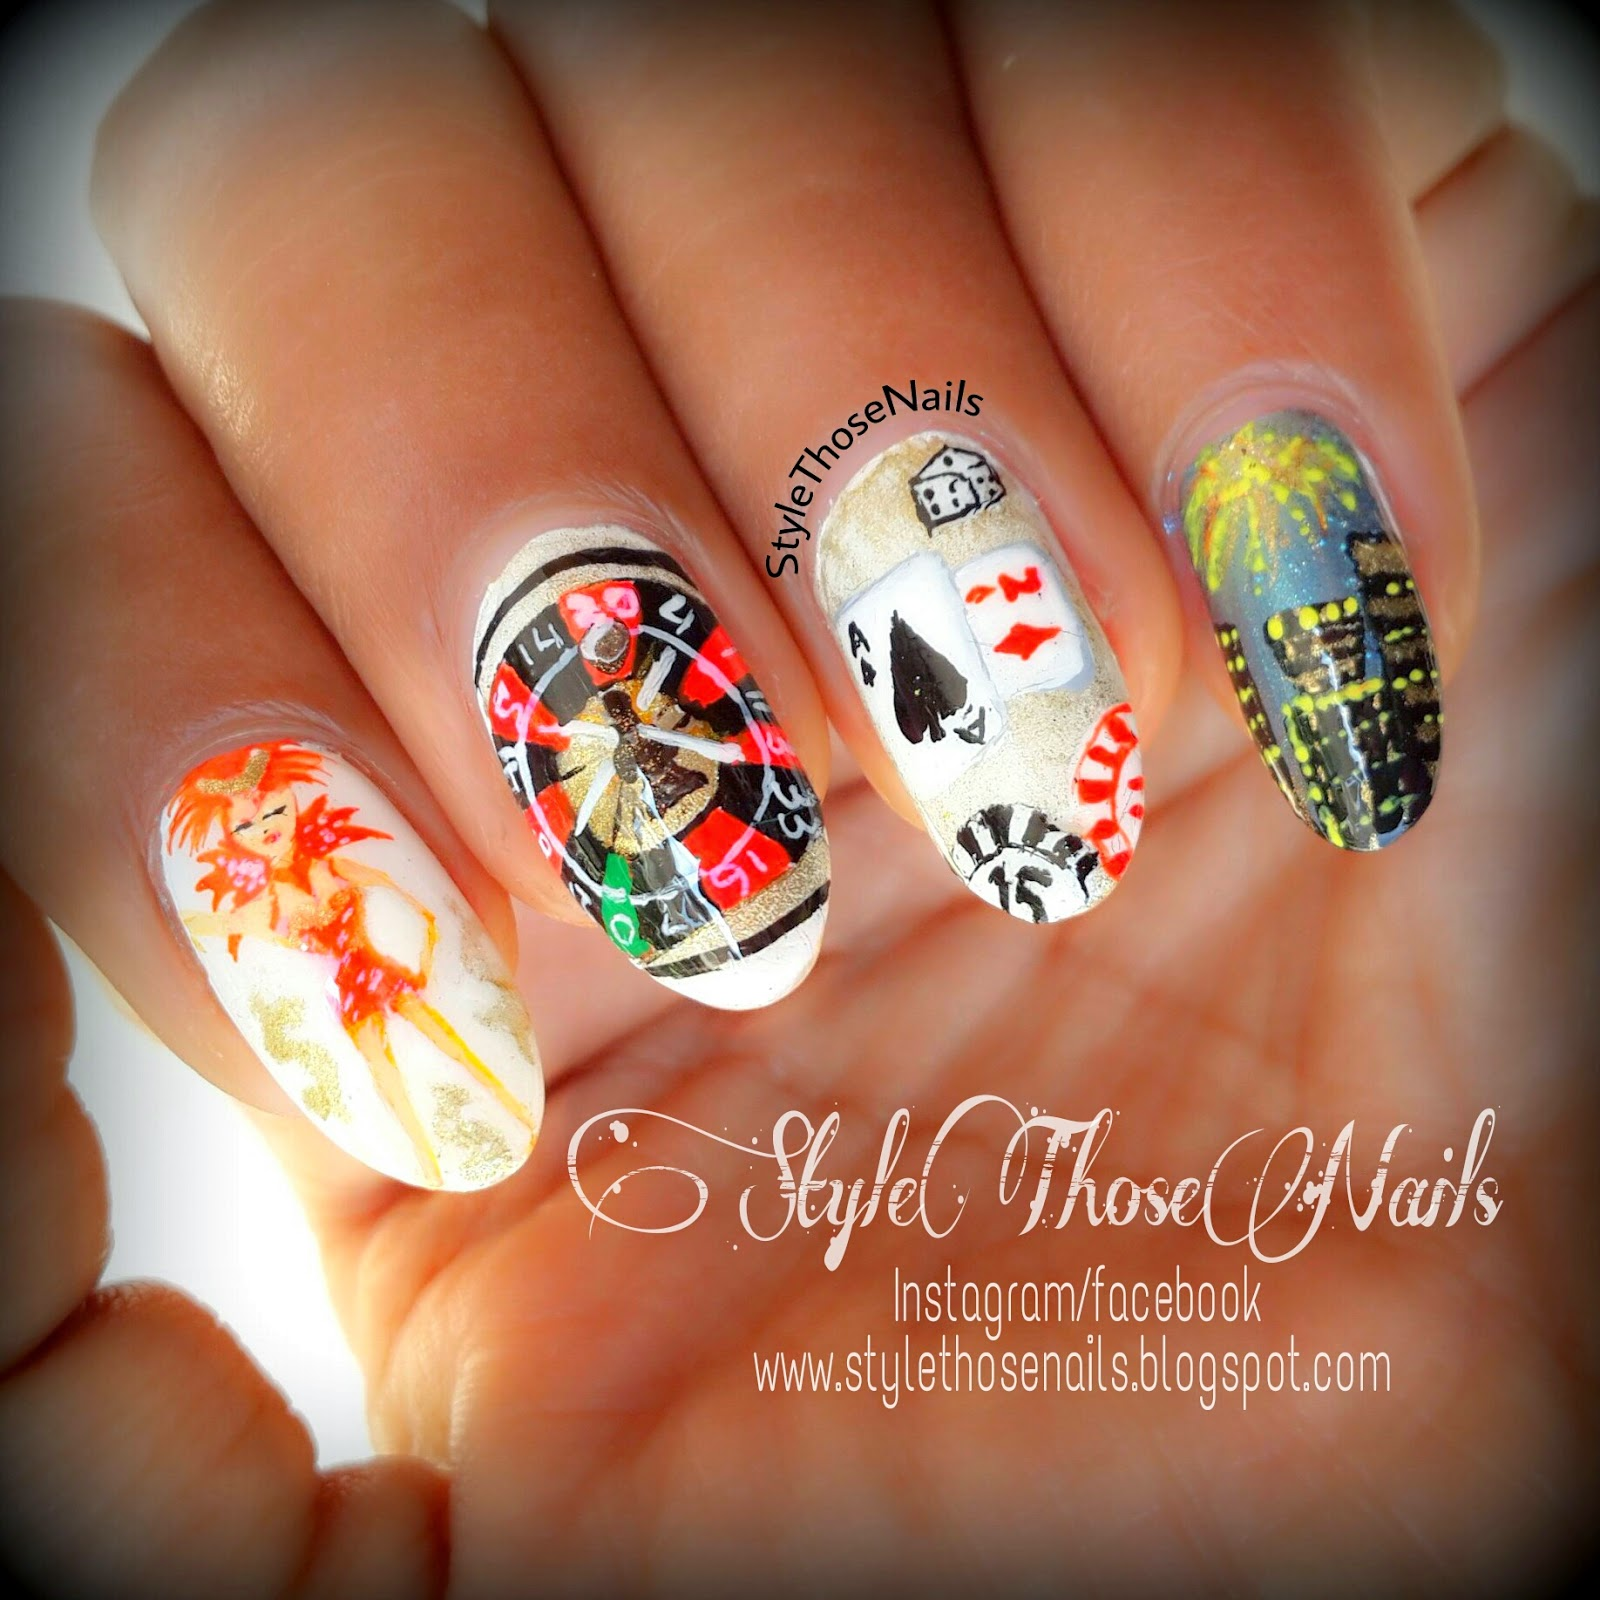 Vegas Inspired Nail Art: Viva las vegas nails nailart nailed by deshea.